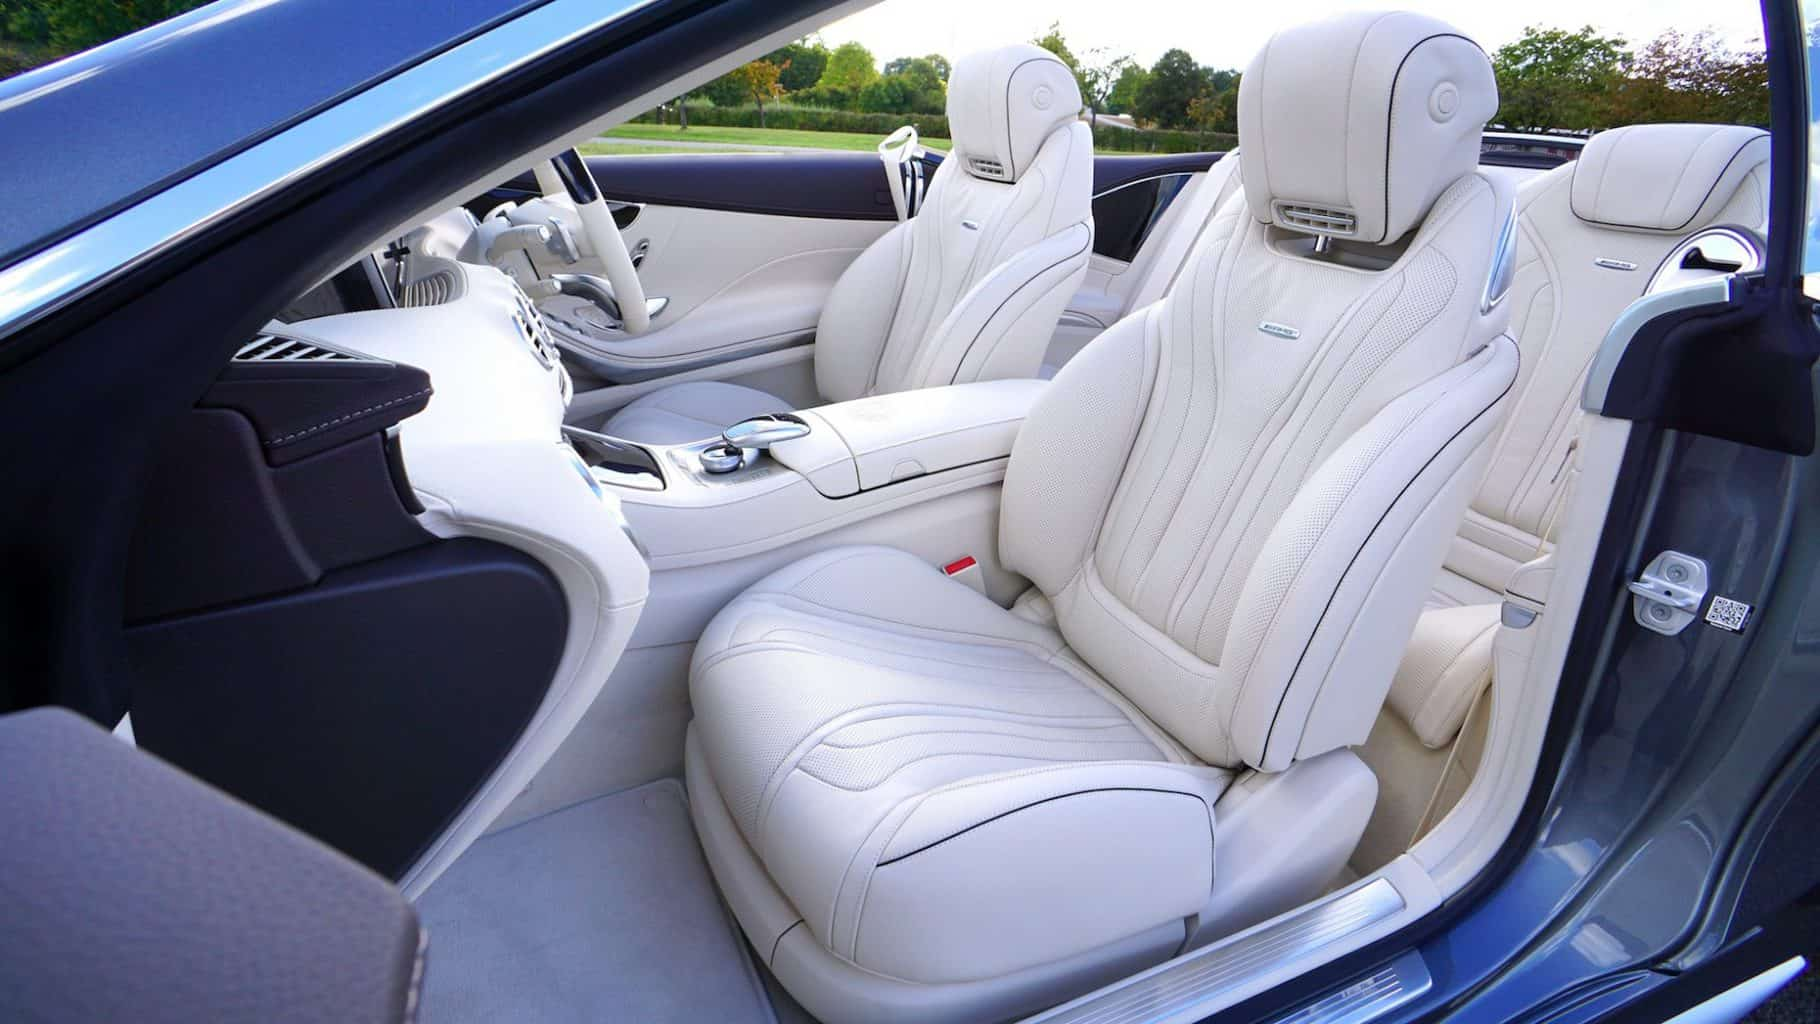 White car leather seats